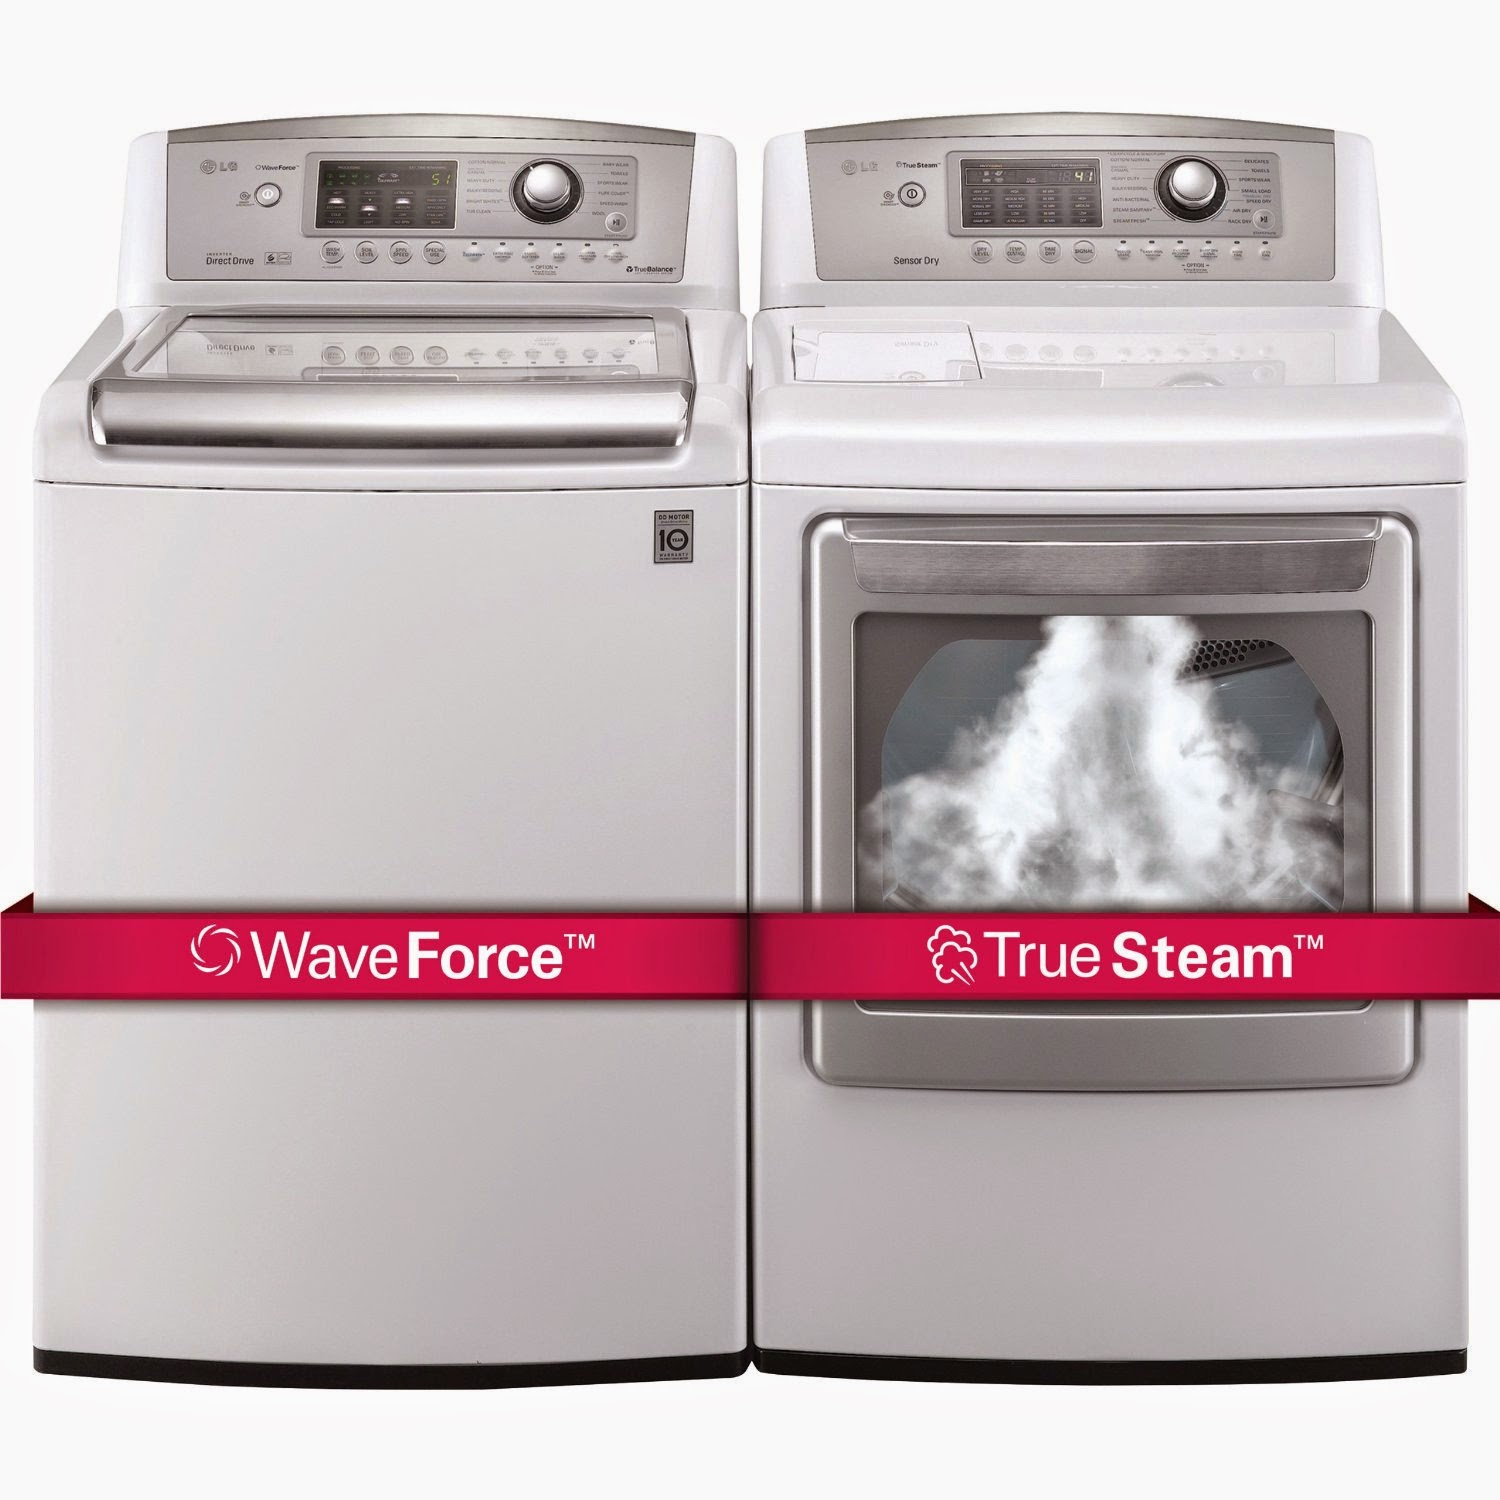 The best top load washer on the market - The Best Top Load Washer On The Market 13